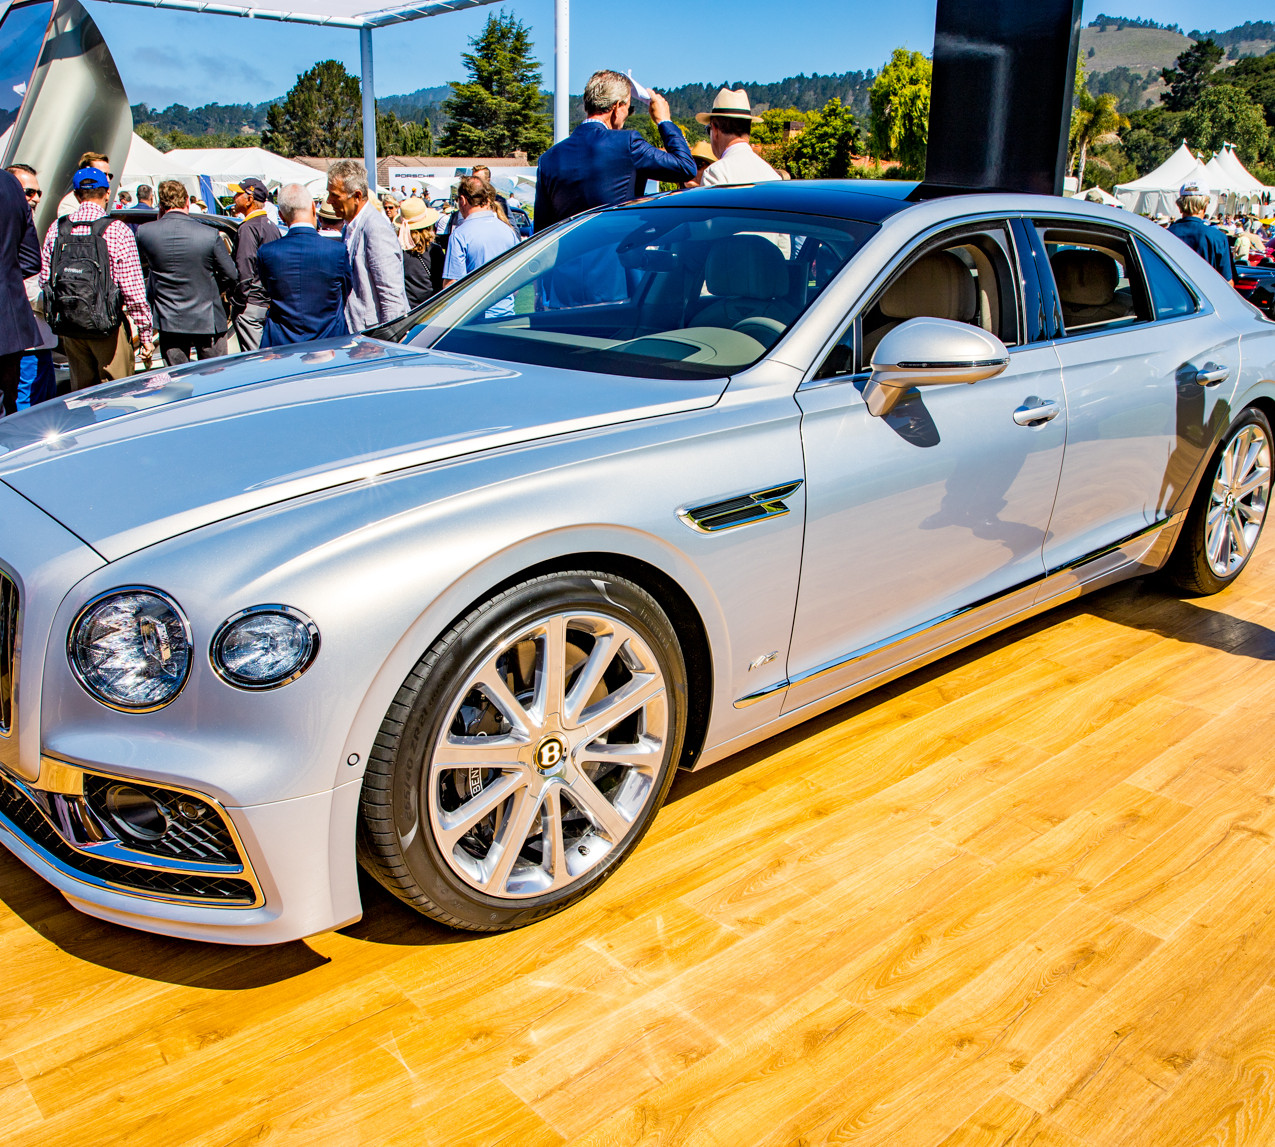 All New Bentley Flying Spur at Quail